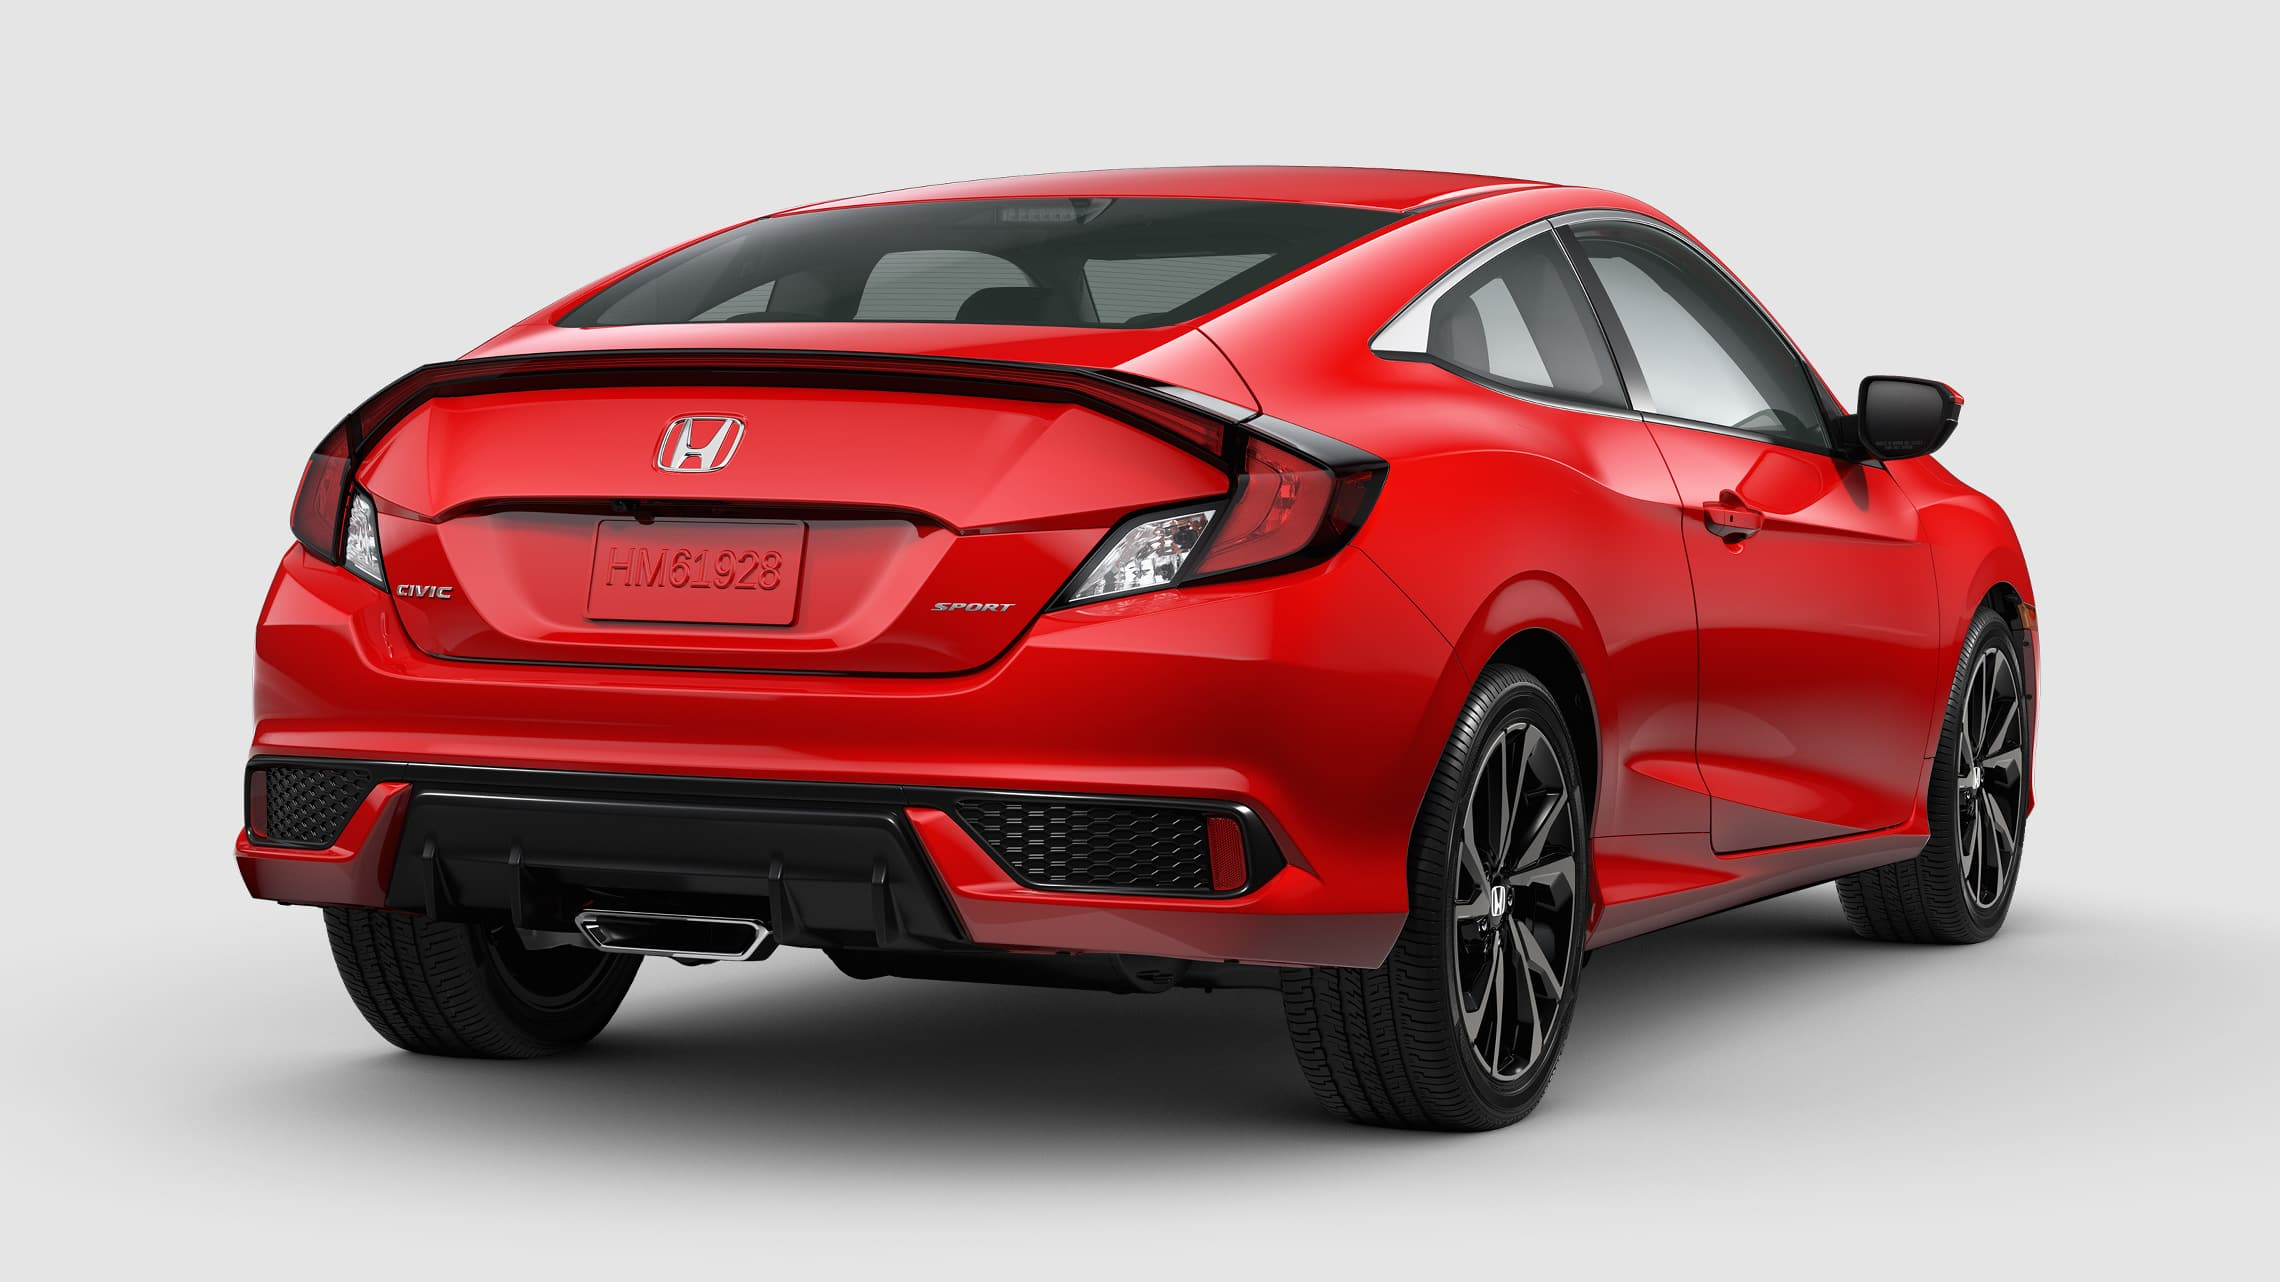 Rear view of the 2020 Honda Civic Sport Coupe in Rallye Red.